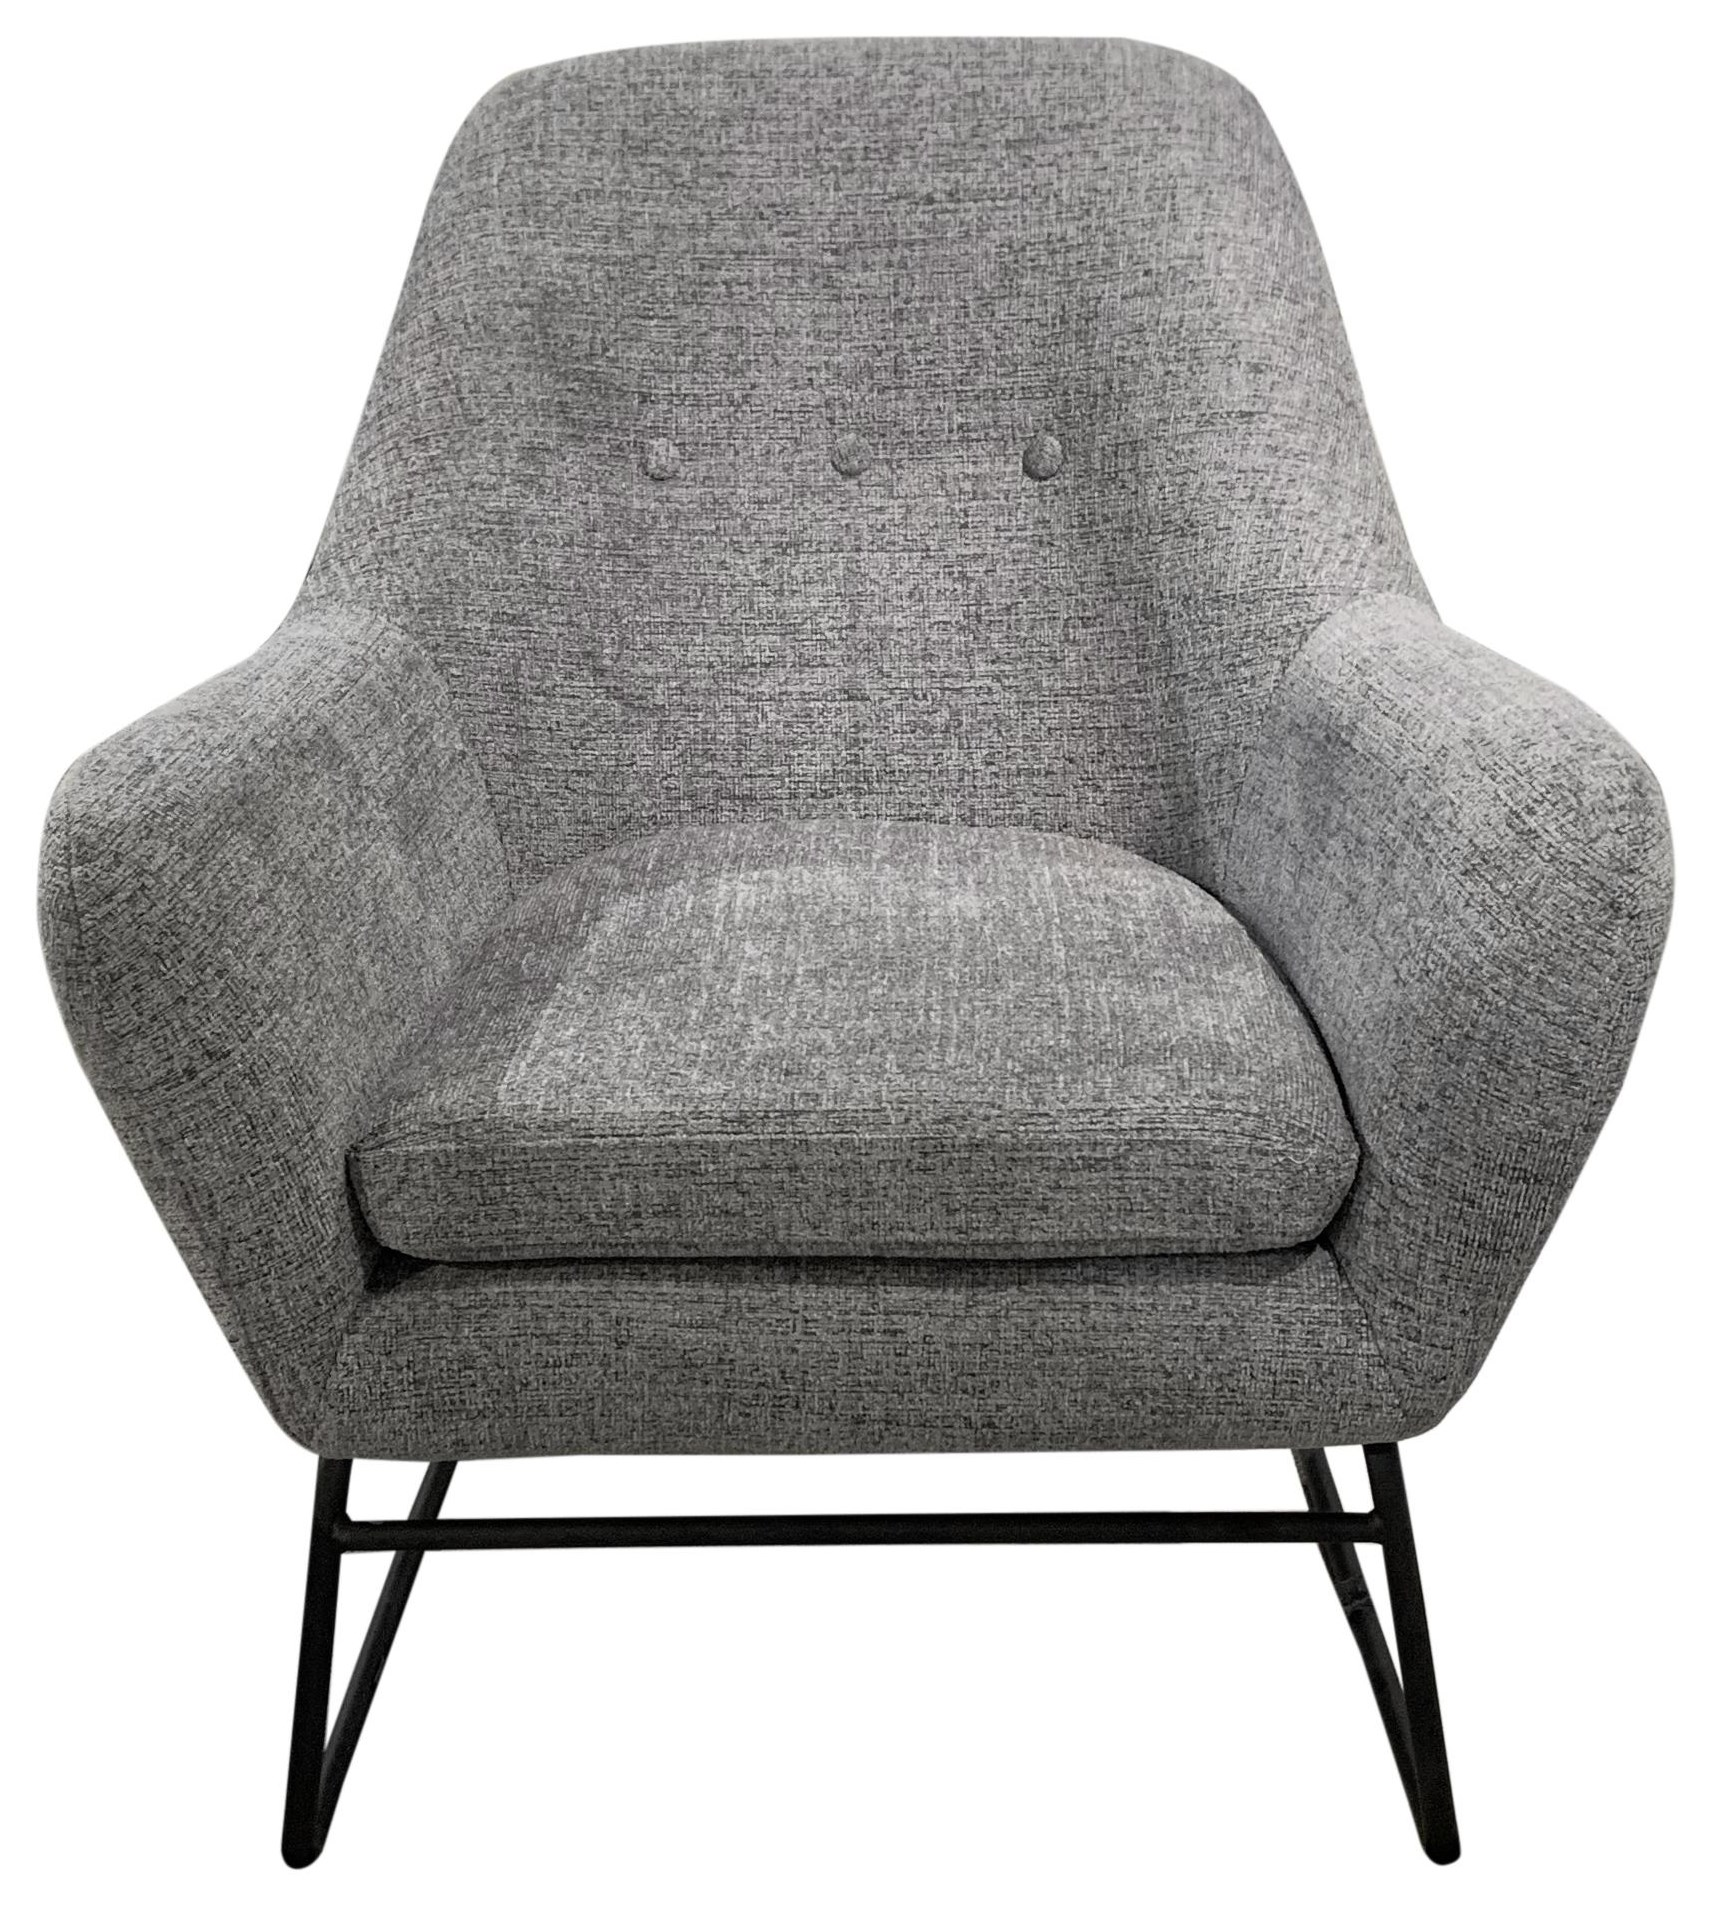 Dare Accent Chair by Amalfi Home Furniture at HomeWorld Furniture